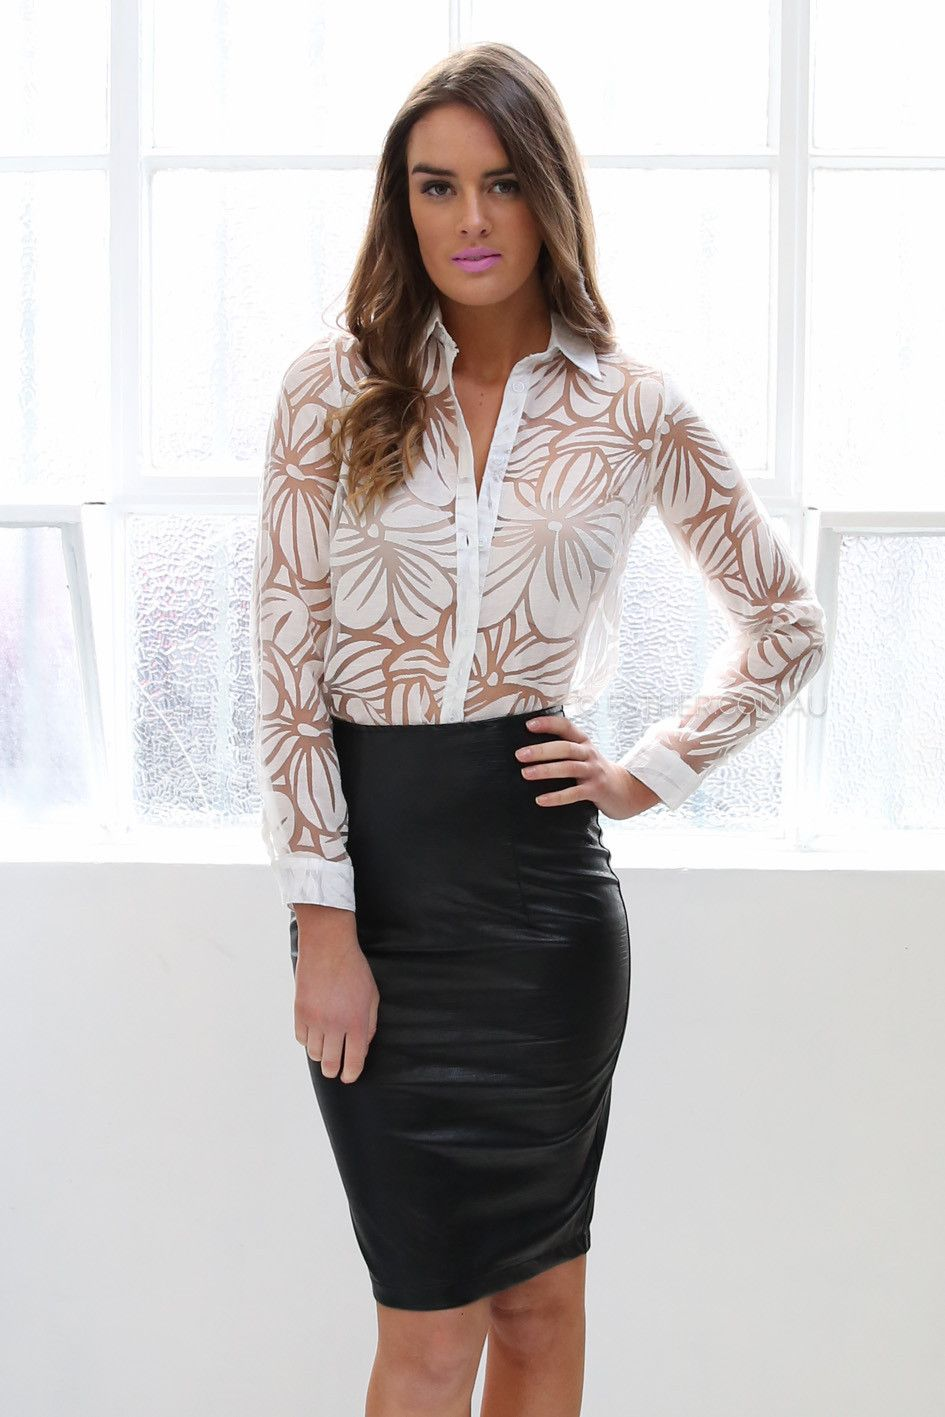 dominique faux leather pencil skirt - black | Esther clothing ...